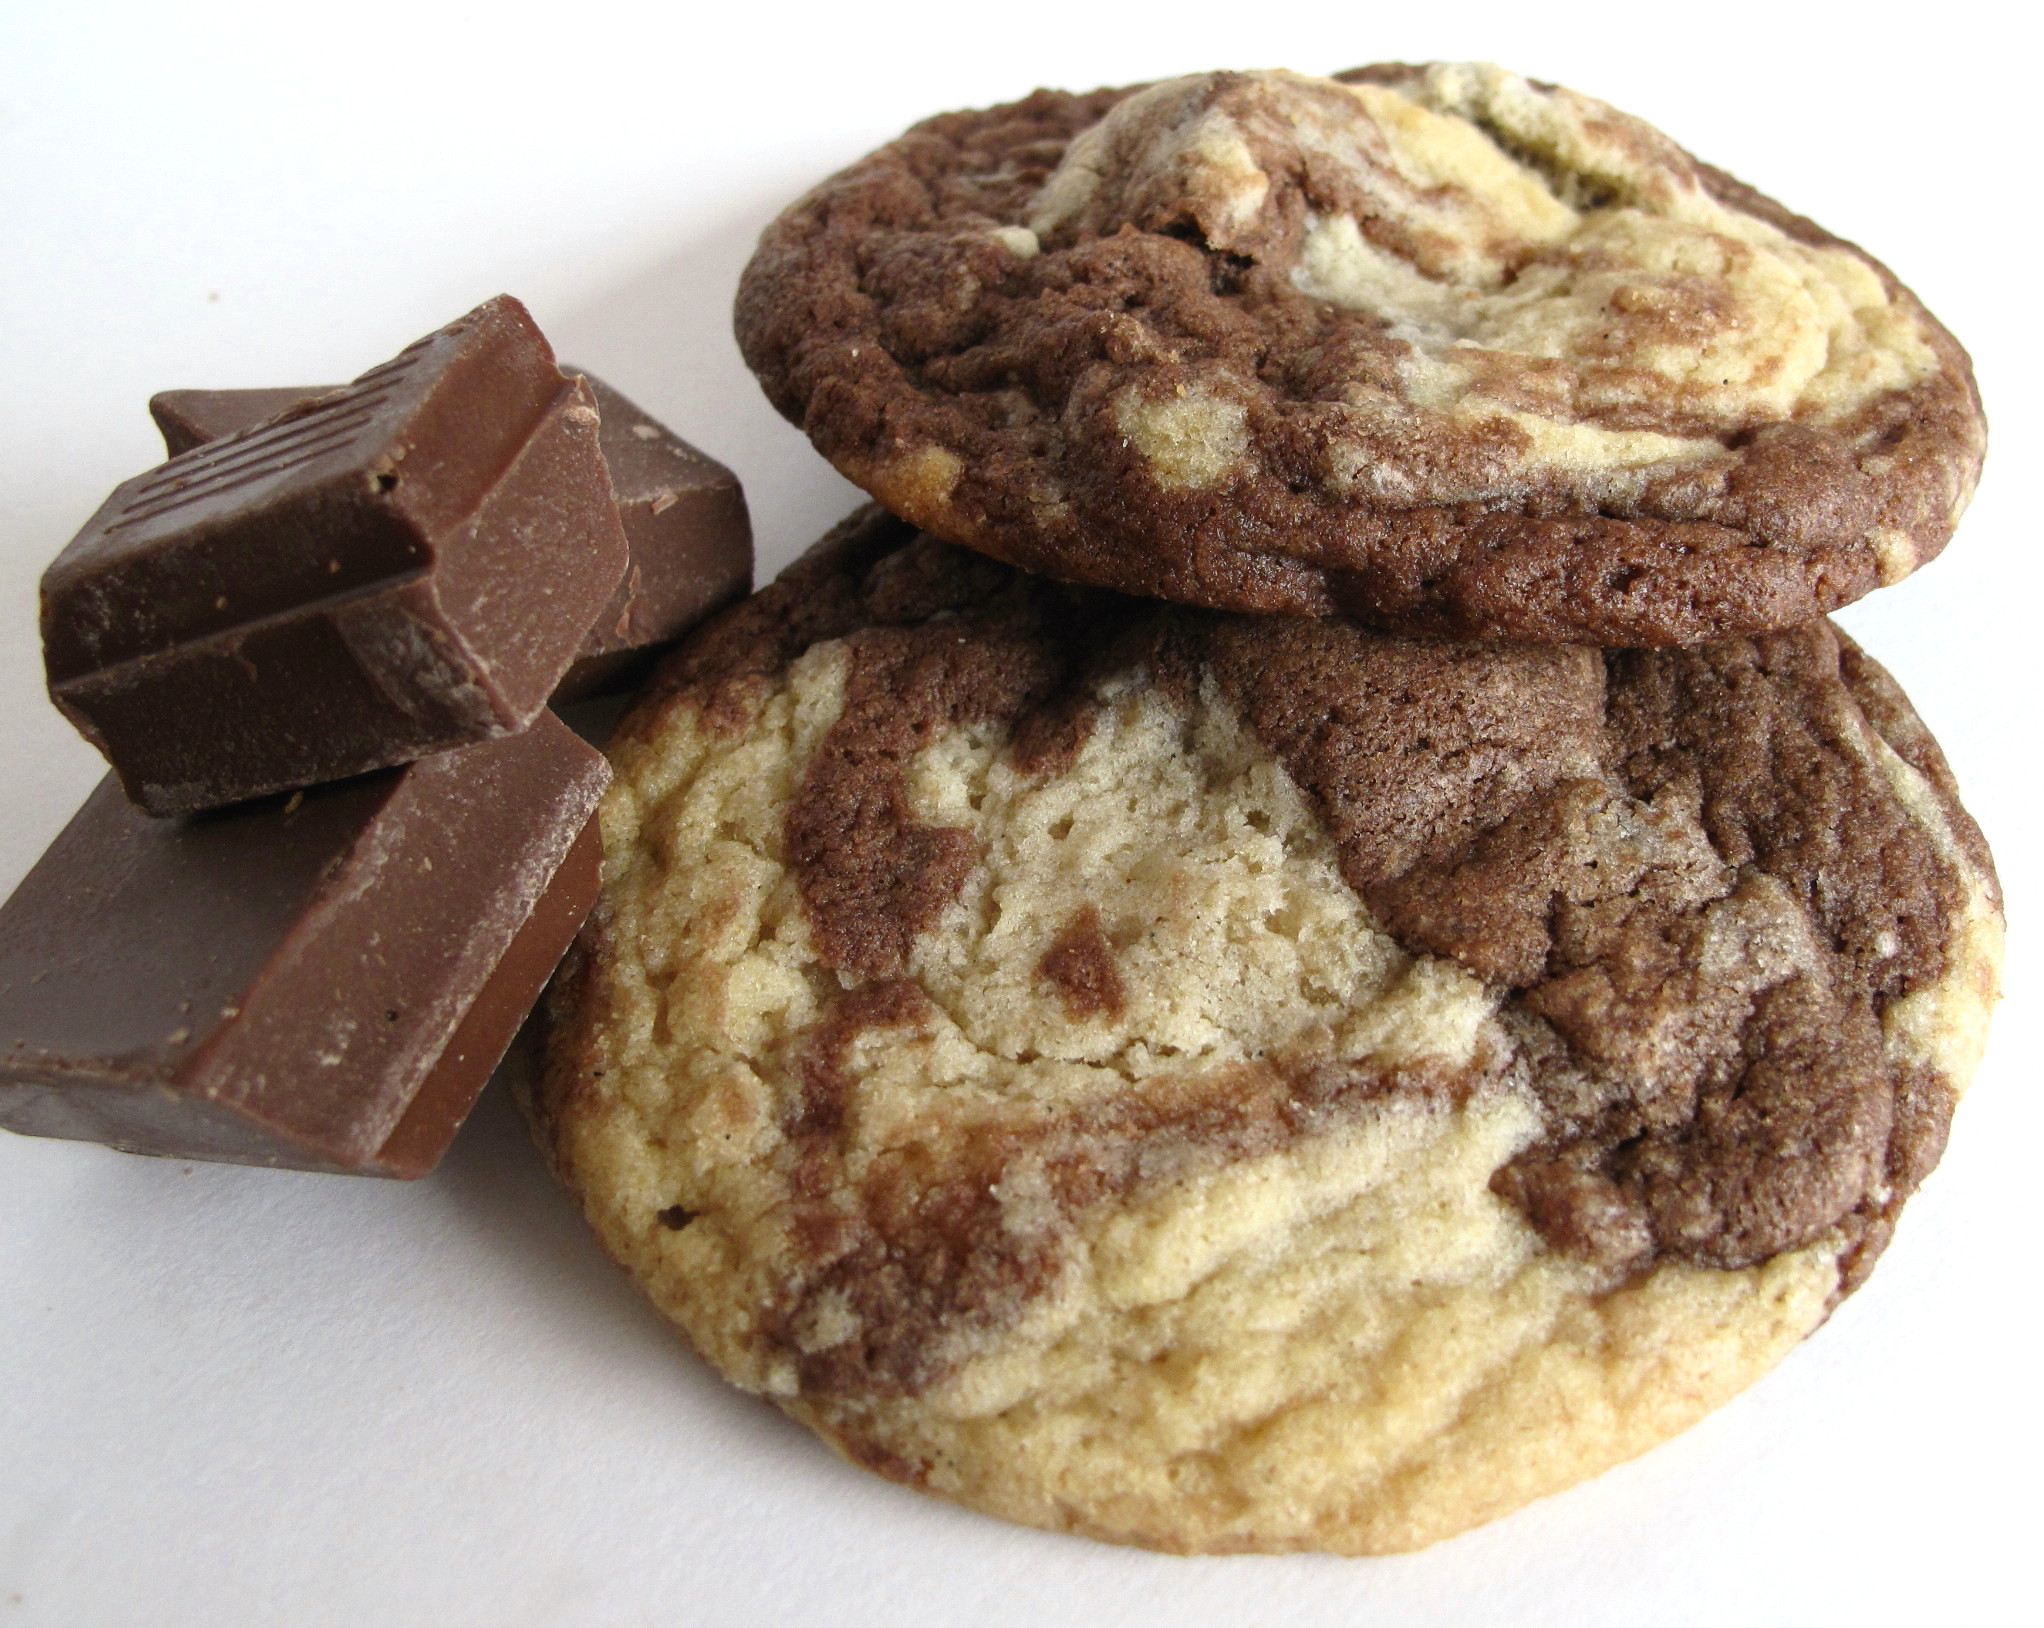 Marbled Chocolate Chunk Cookies - The Monday Box